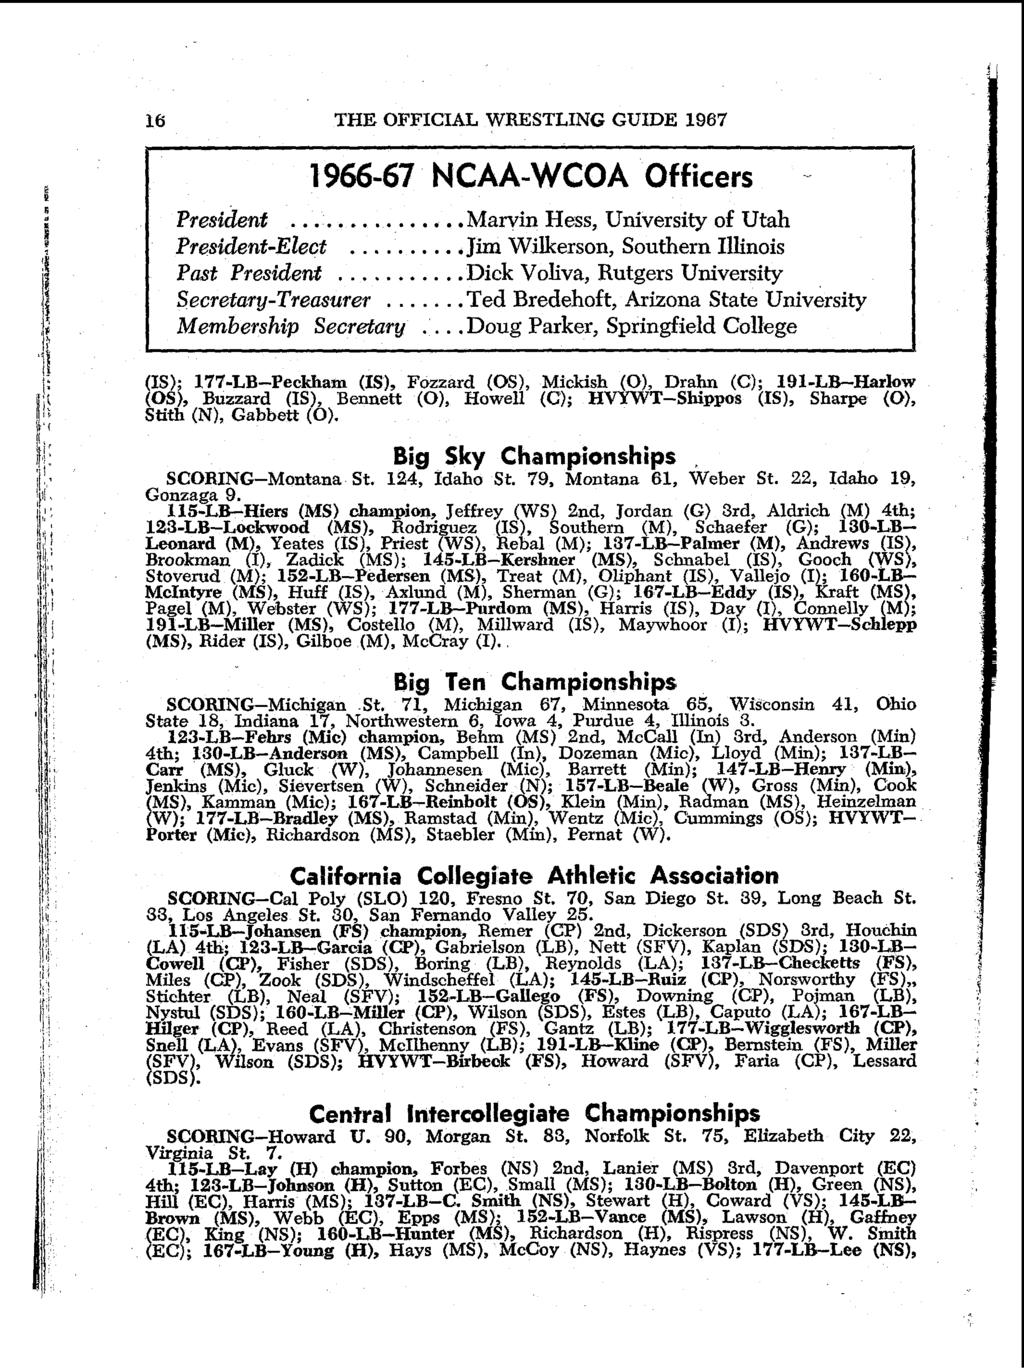 16 THE OFFICIAL WRESTLING GUIDE 1967 1966-67 NCAA-WCOA Officers - President.....Marvin Hess, University of Utah President-Elect..Jim Wilkerson, Southern Illinois Pat President.